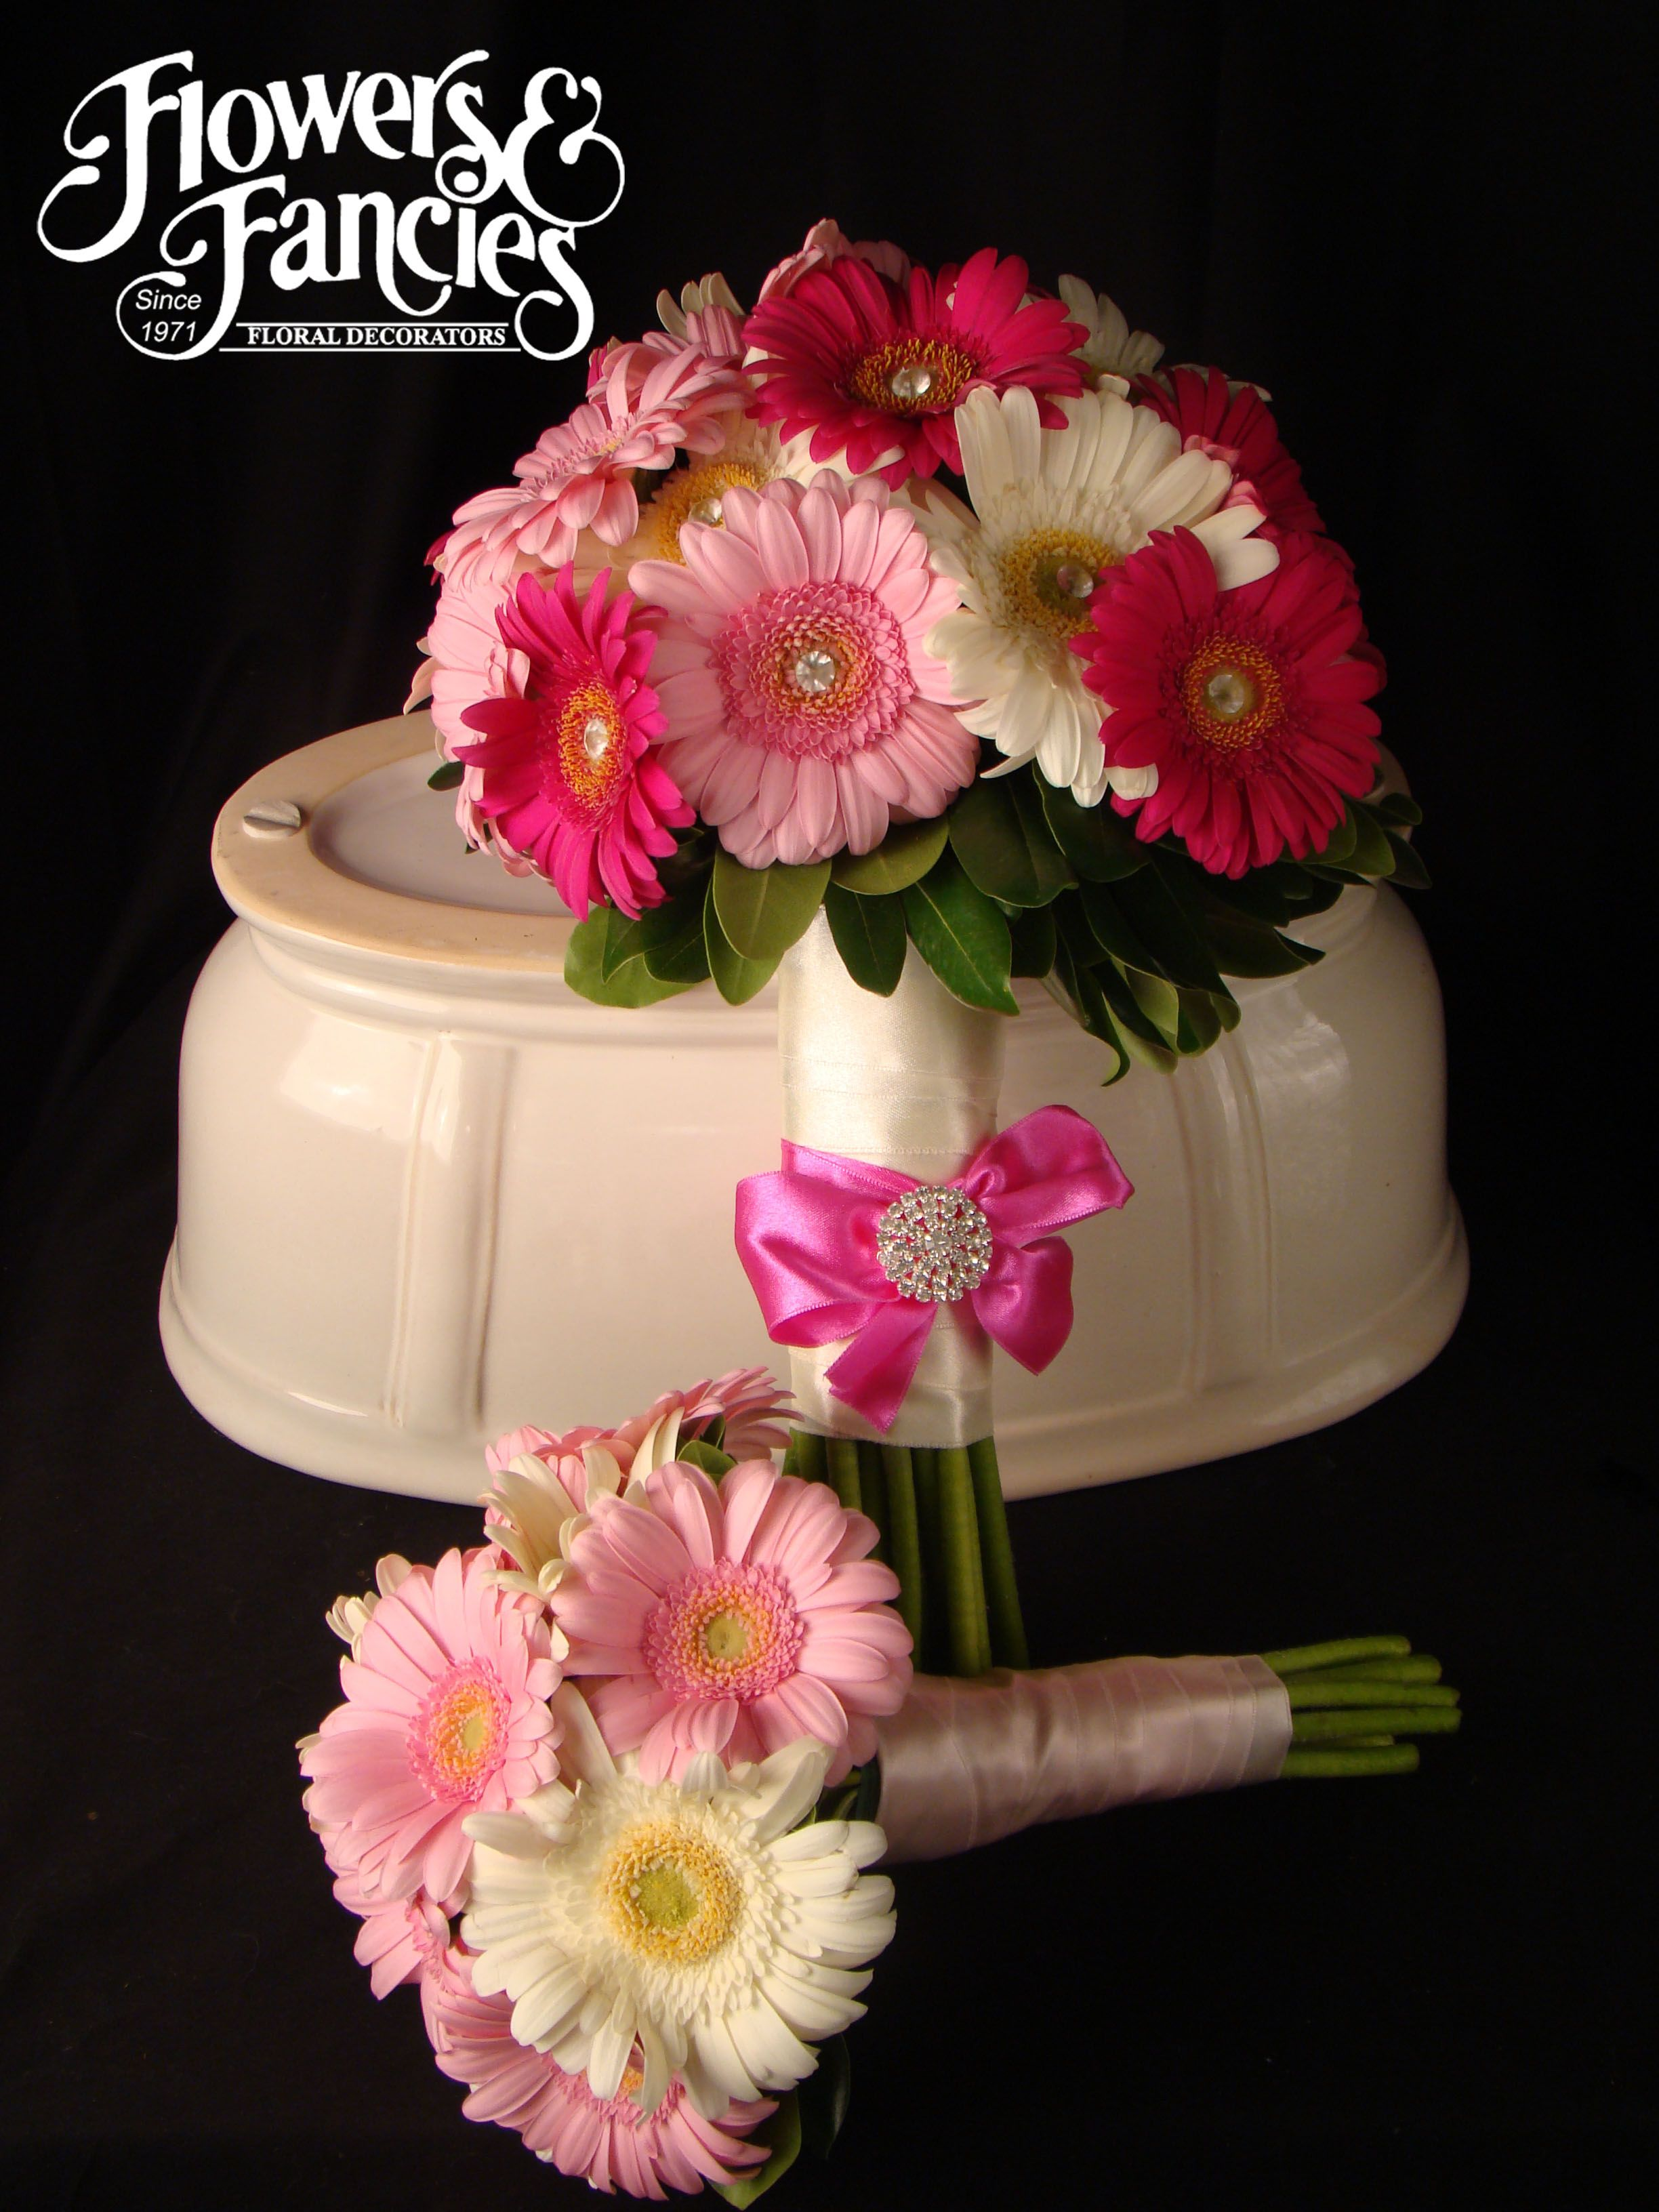 Flowers & Fancies Bouquets. Pink and White Gerber Daisy Bouquets ...